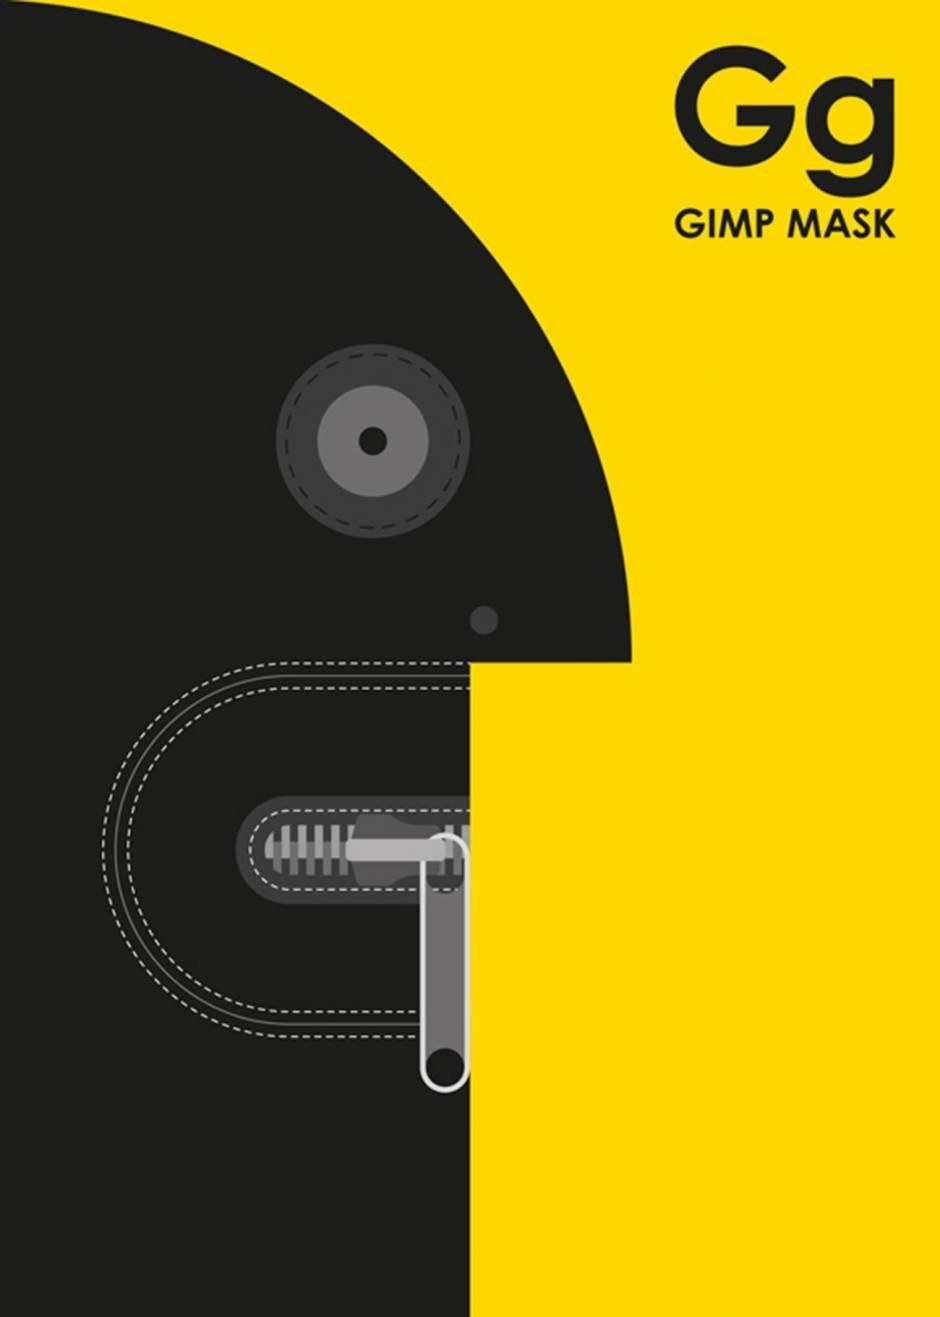 G is for Gimp